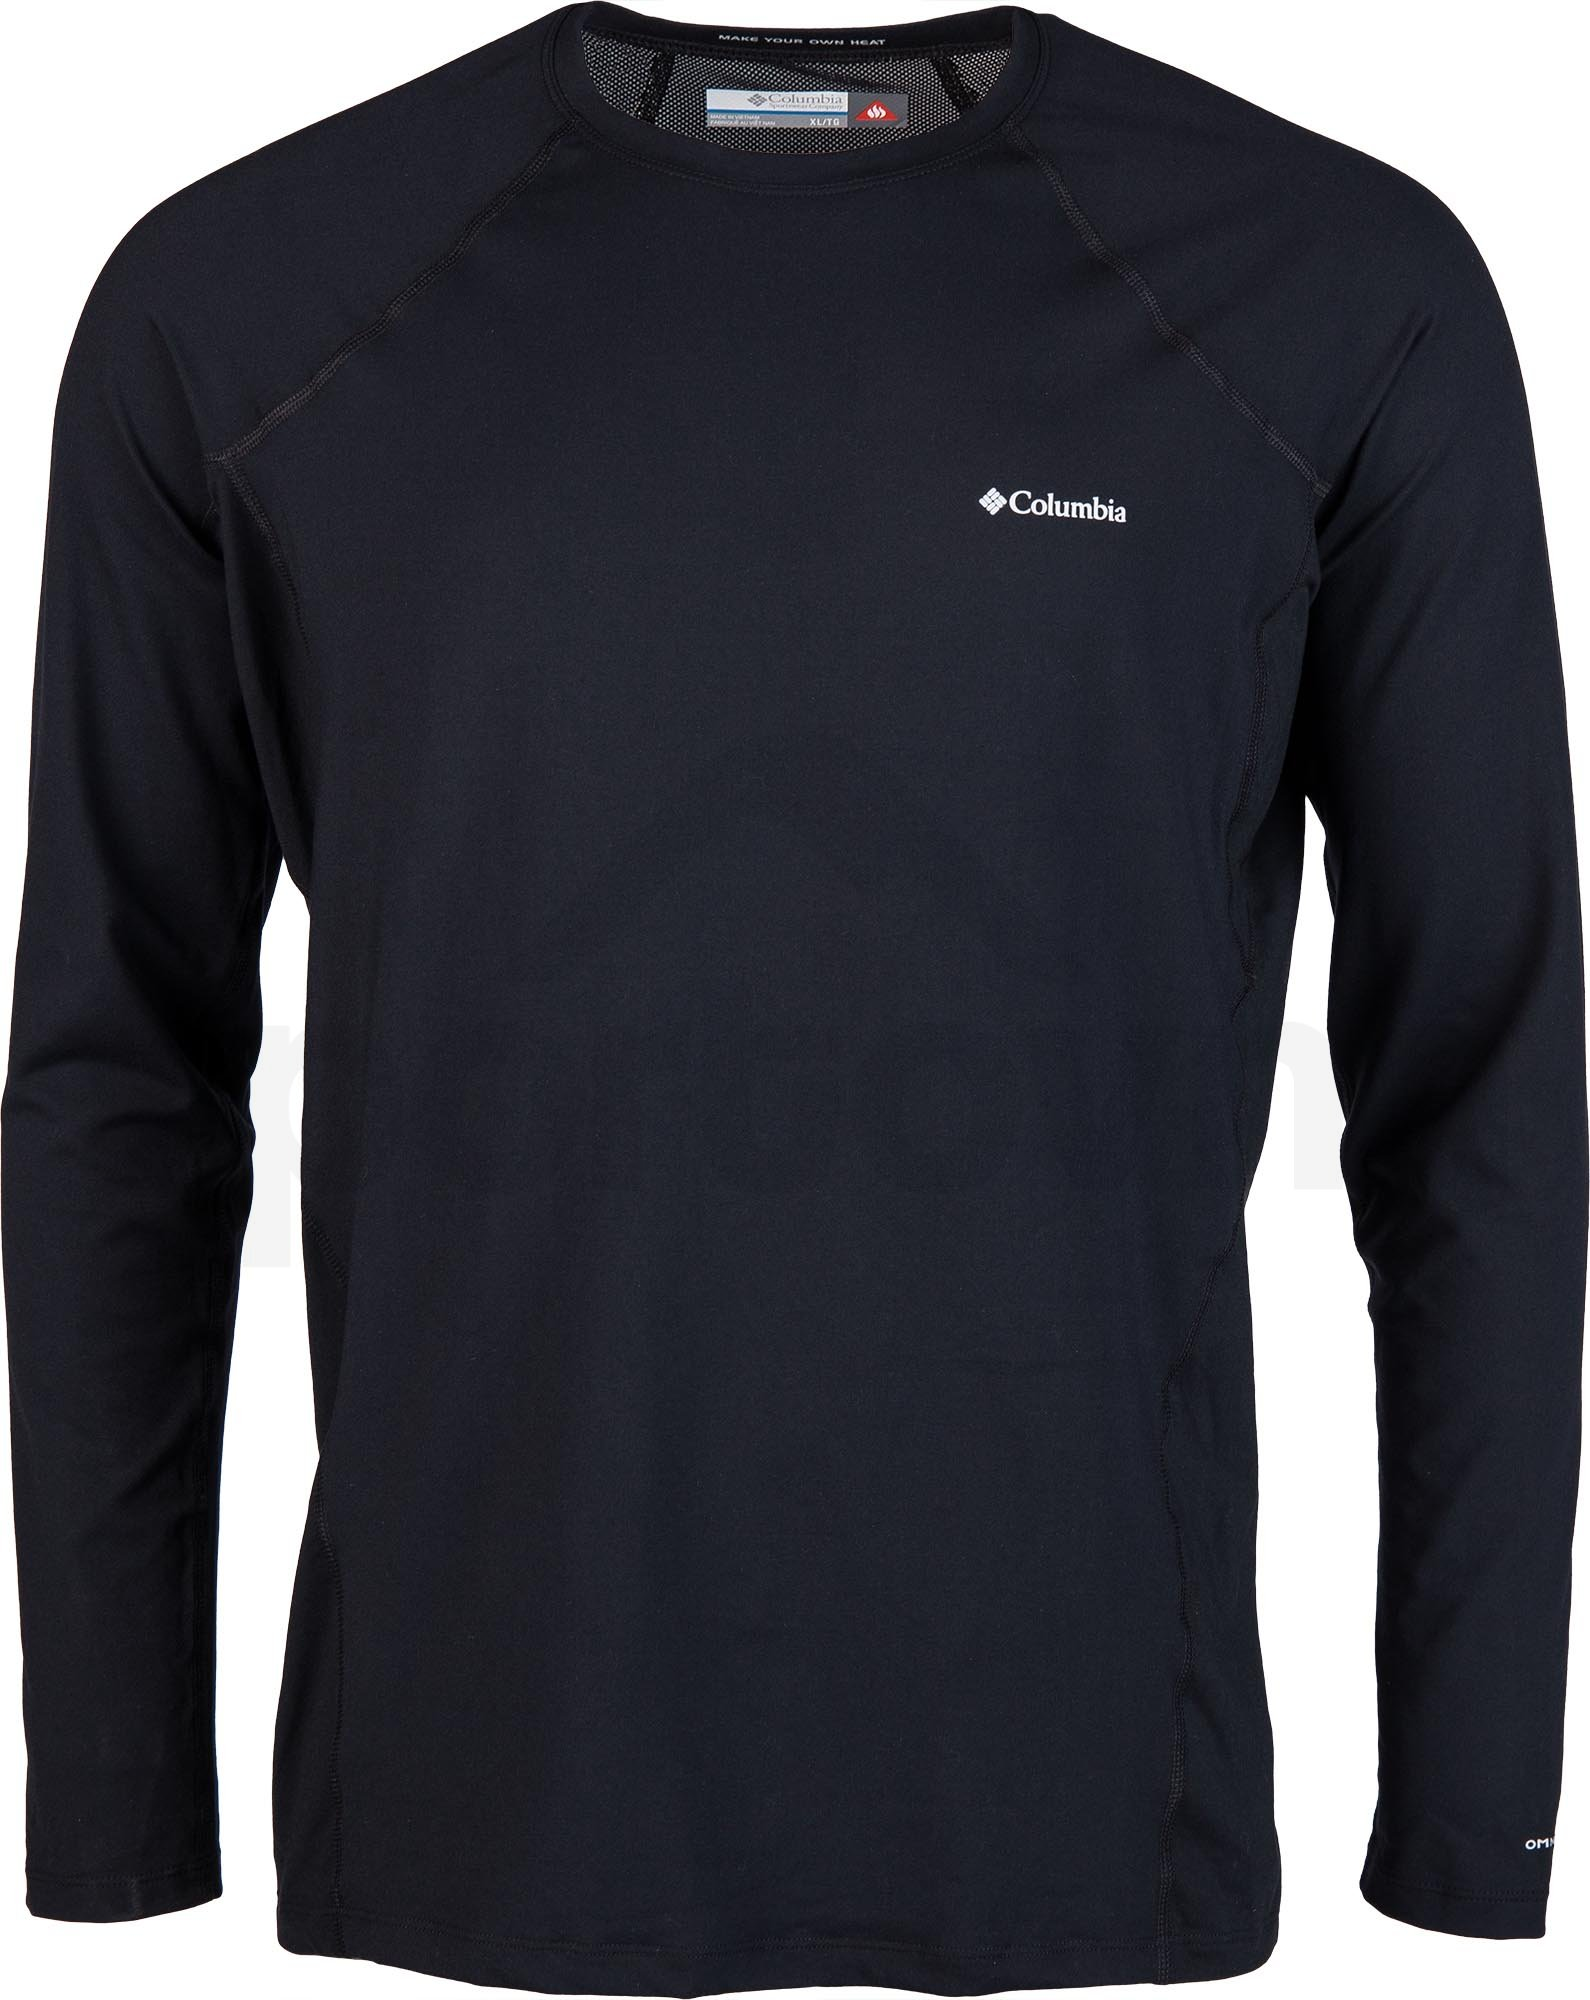 columbia-midweight-ls-top-m_11